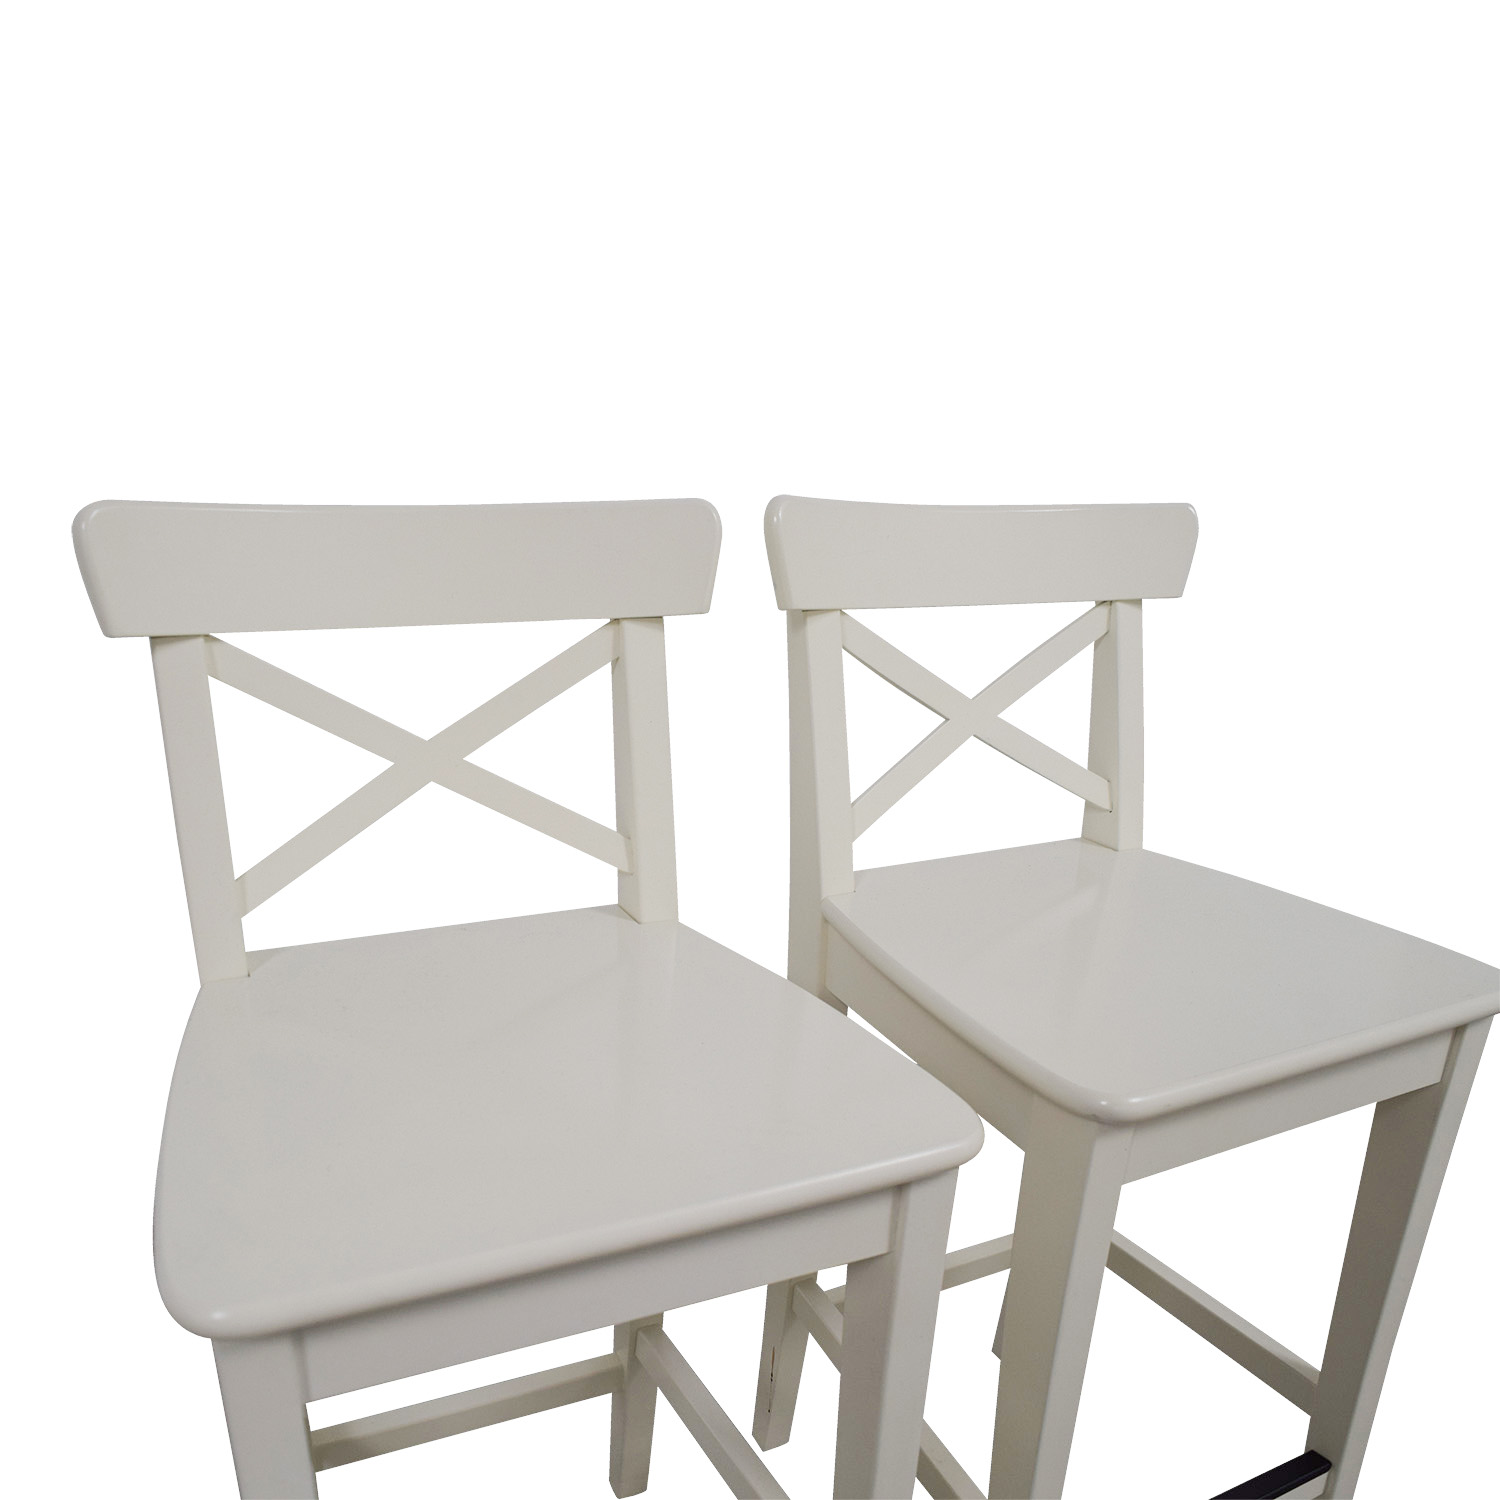 36 Inch Bar Stools Ikea 63 Off Ikea Ikea White Bar Stools Chairs